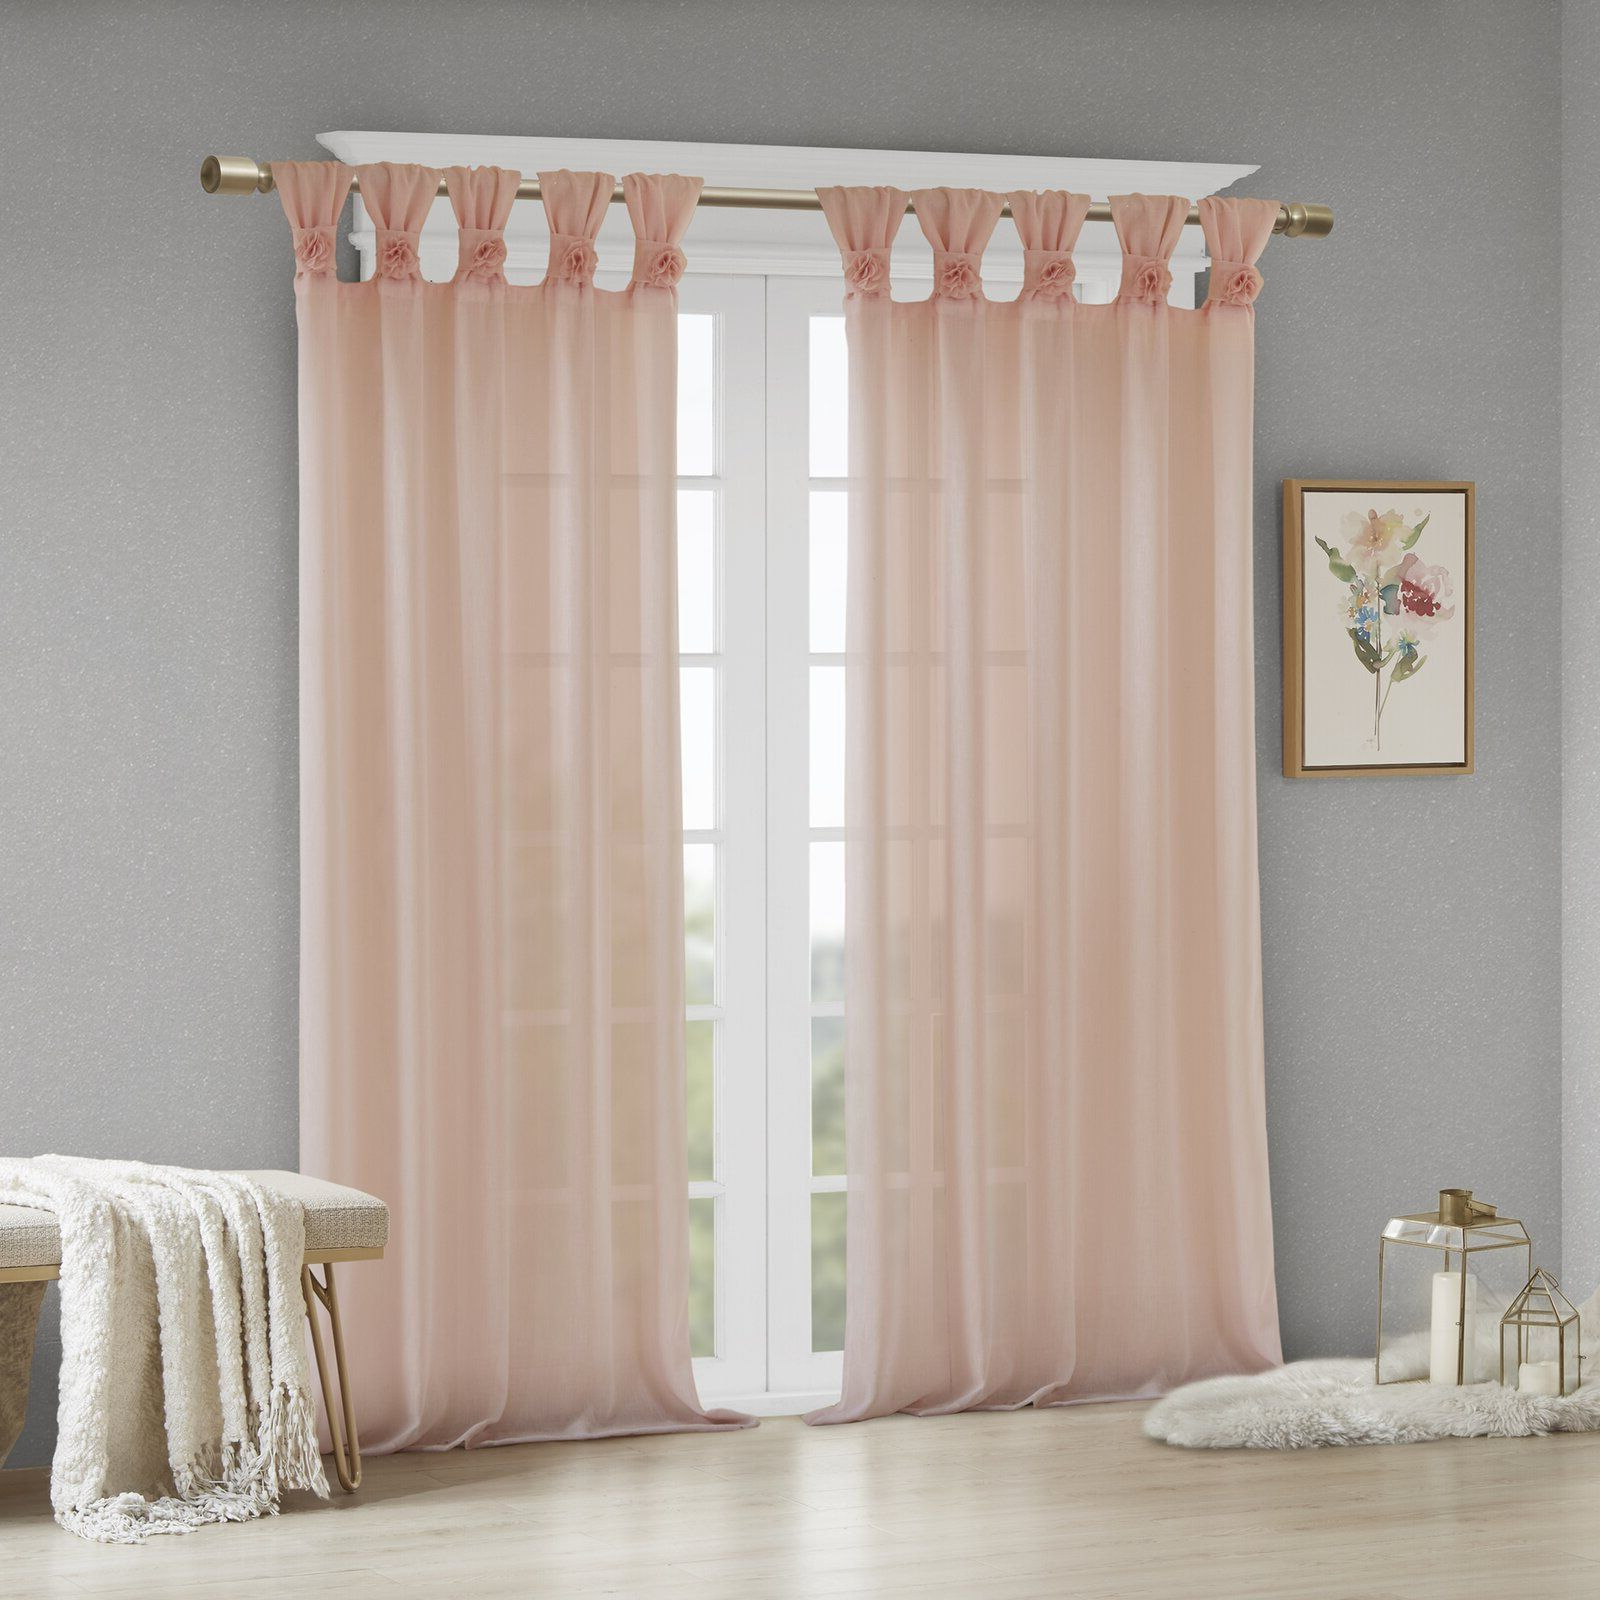 2021 Tab Top Sheer Single Curtain Panels Within Mysliwiec Floral Twist Solid Semi Sheer Tab Top Single (View 19 of 20)